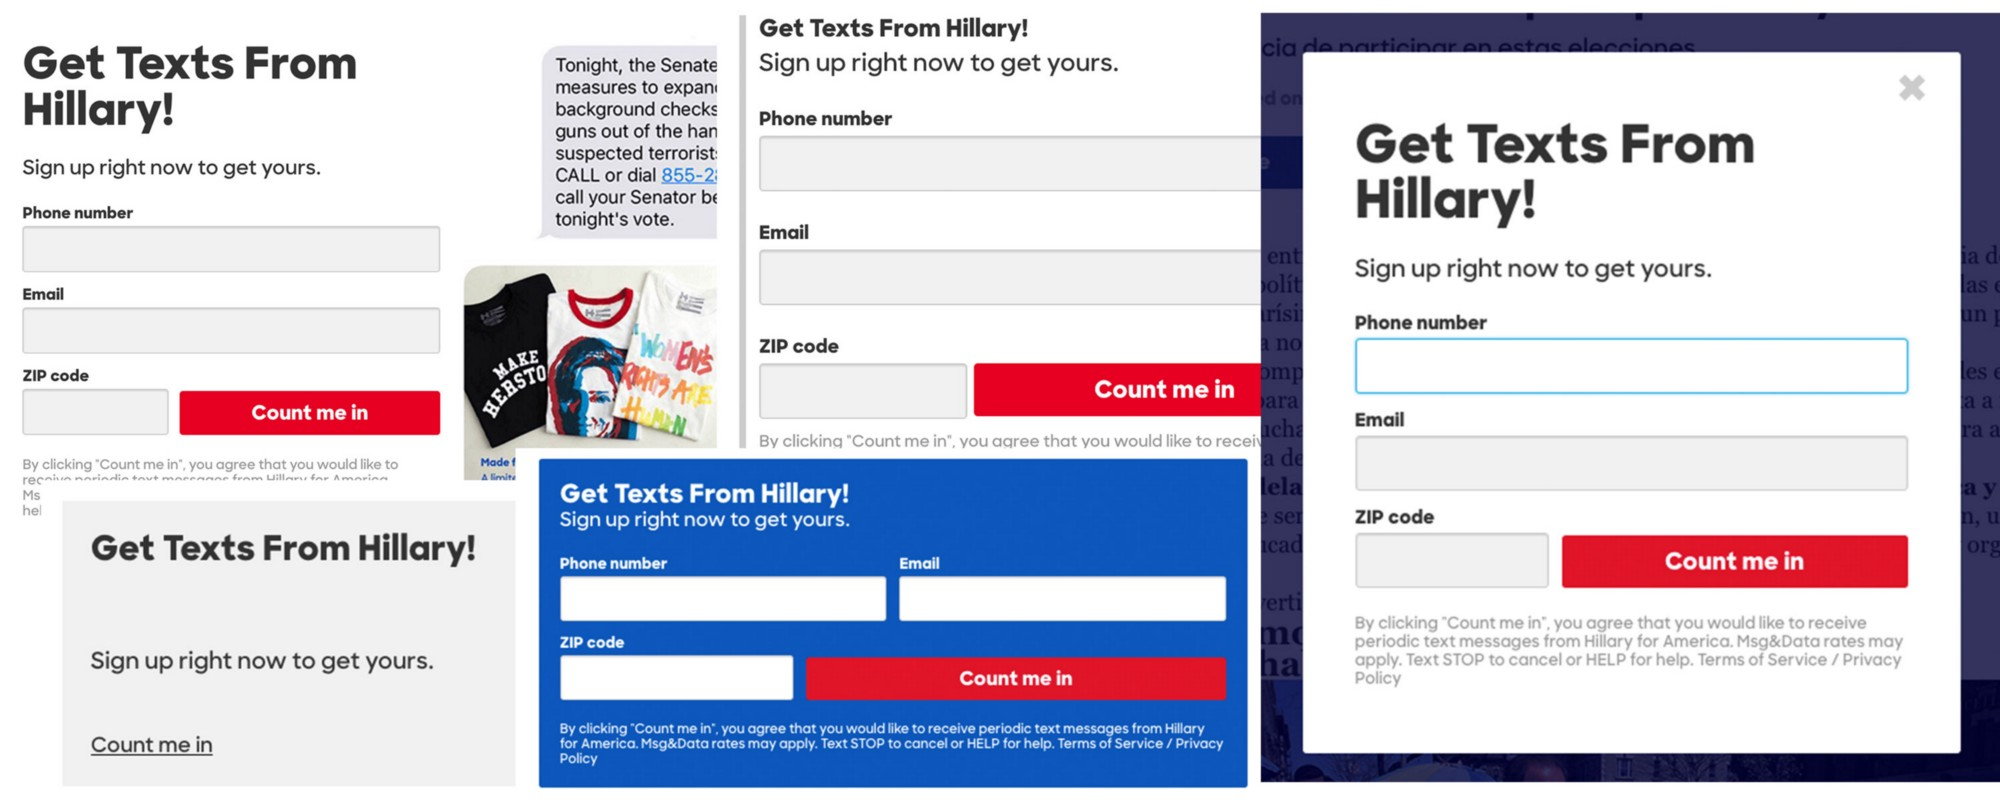 Pantsuit: The Hillary Clinton UI pattern library.